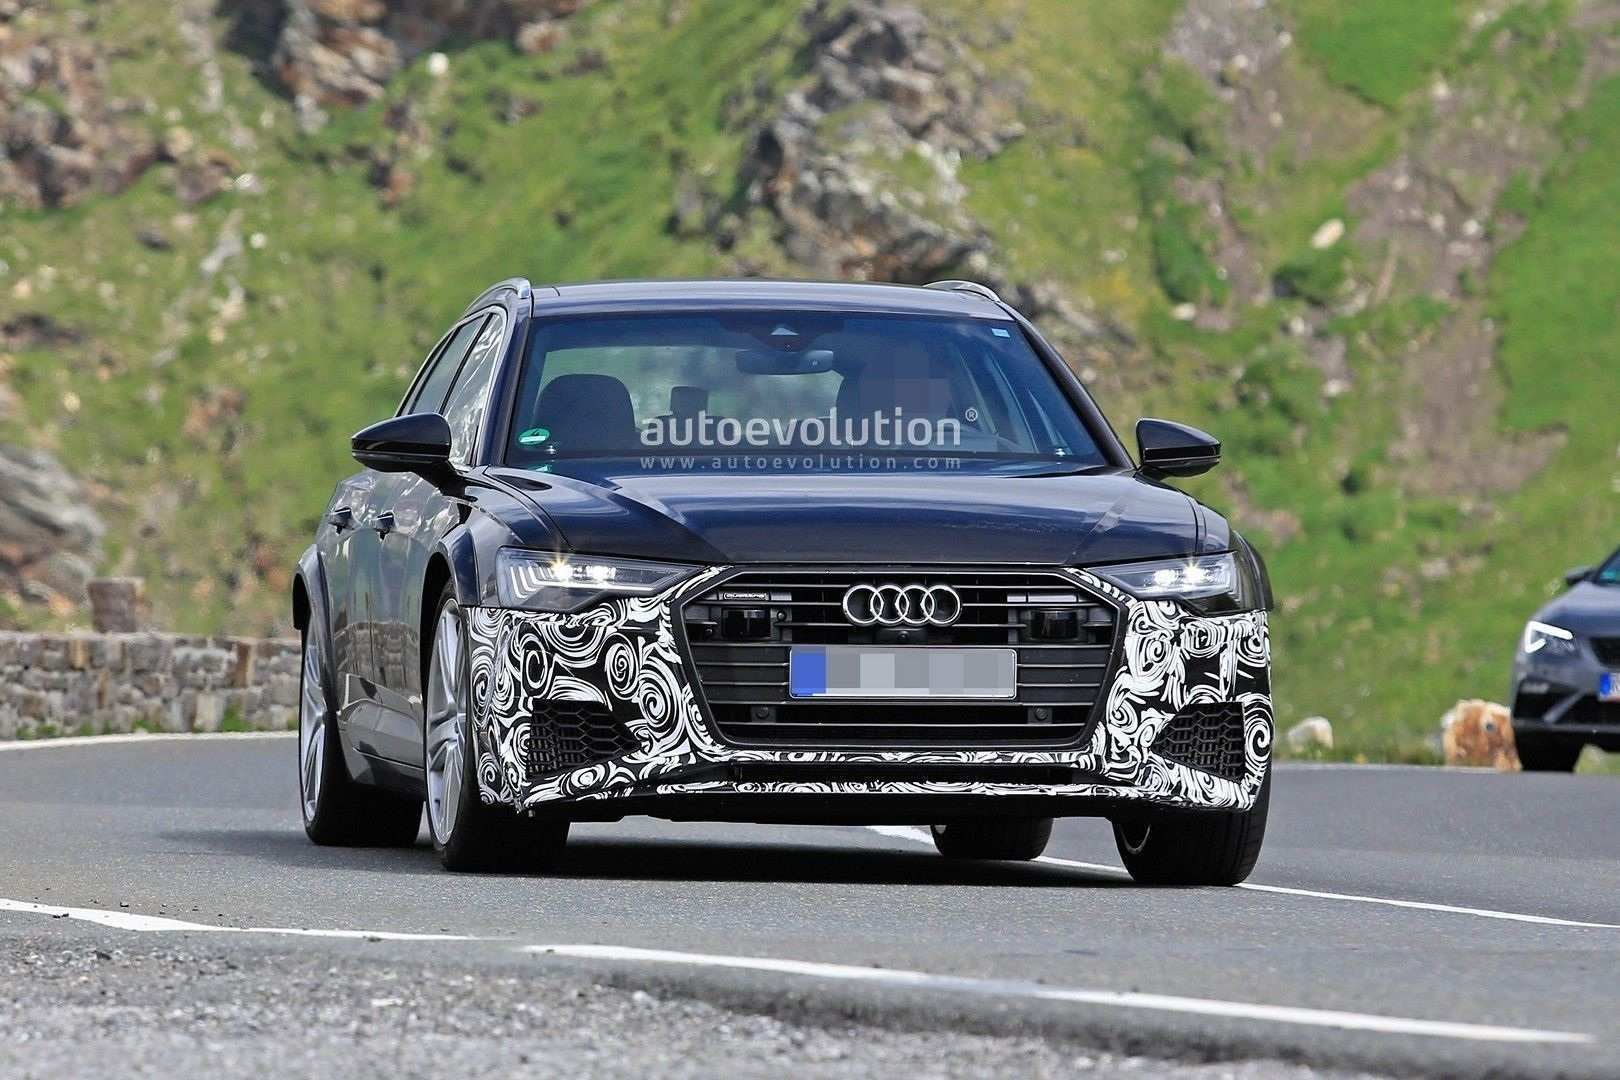 39 New When Do 2020 Audi Come Out Photos